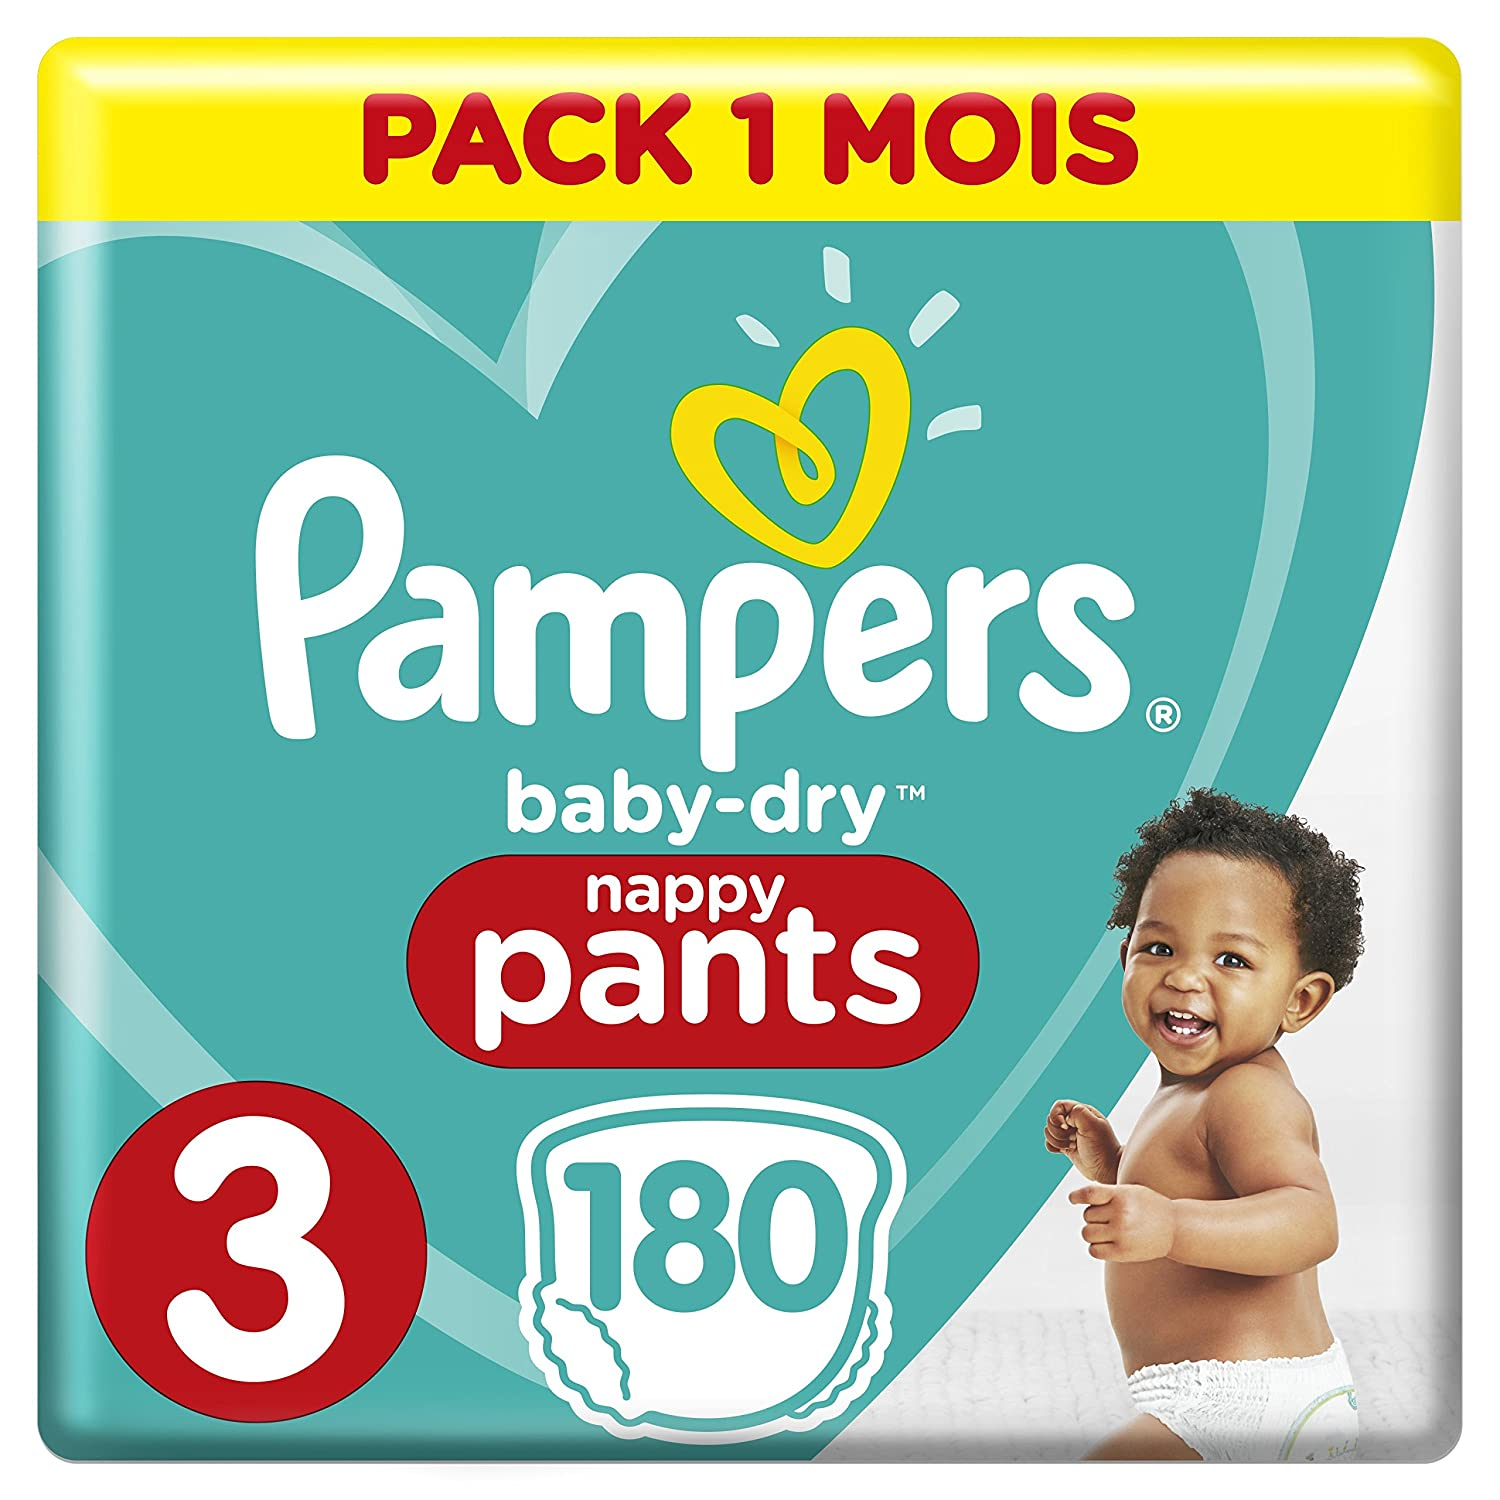 Pampers Baby Dry Pants Size 3 180 with Air Ducts Month (Box of 180 Pieces) 8001090699893